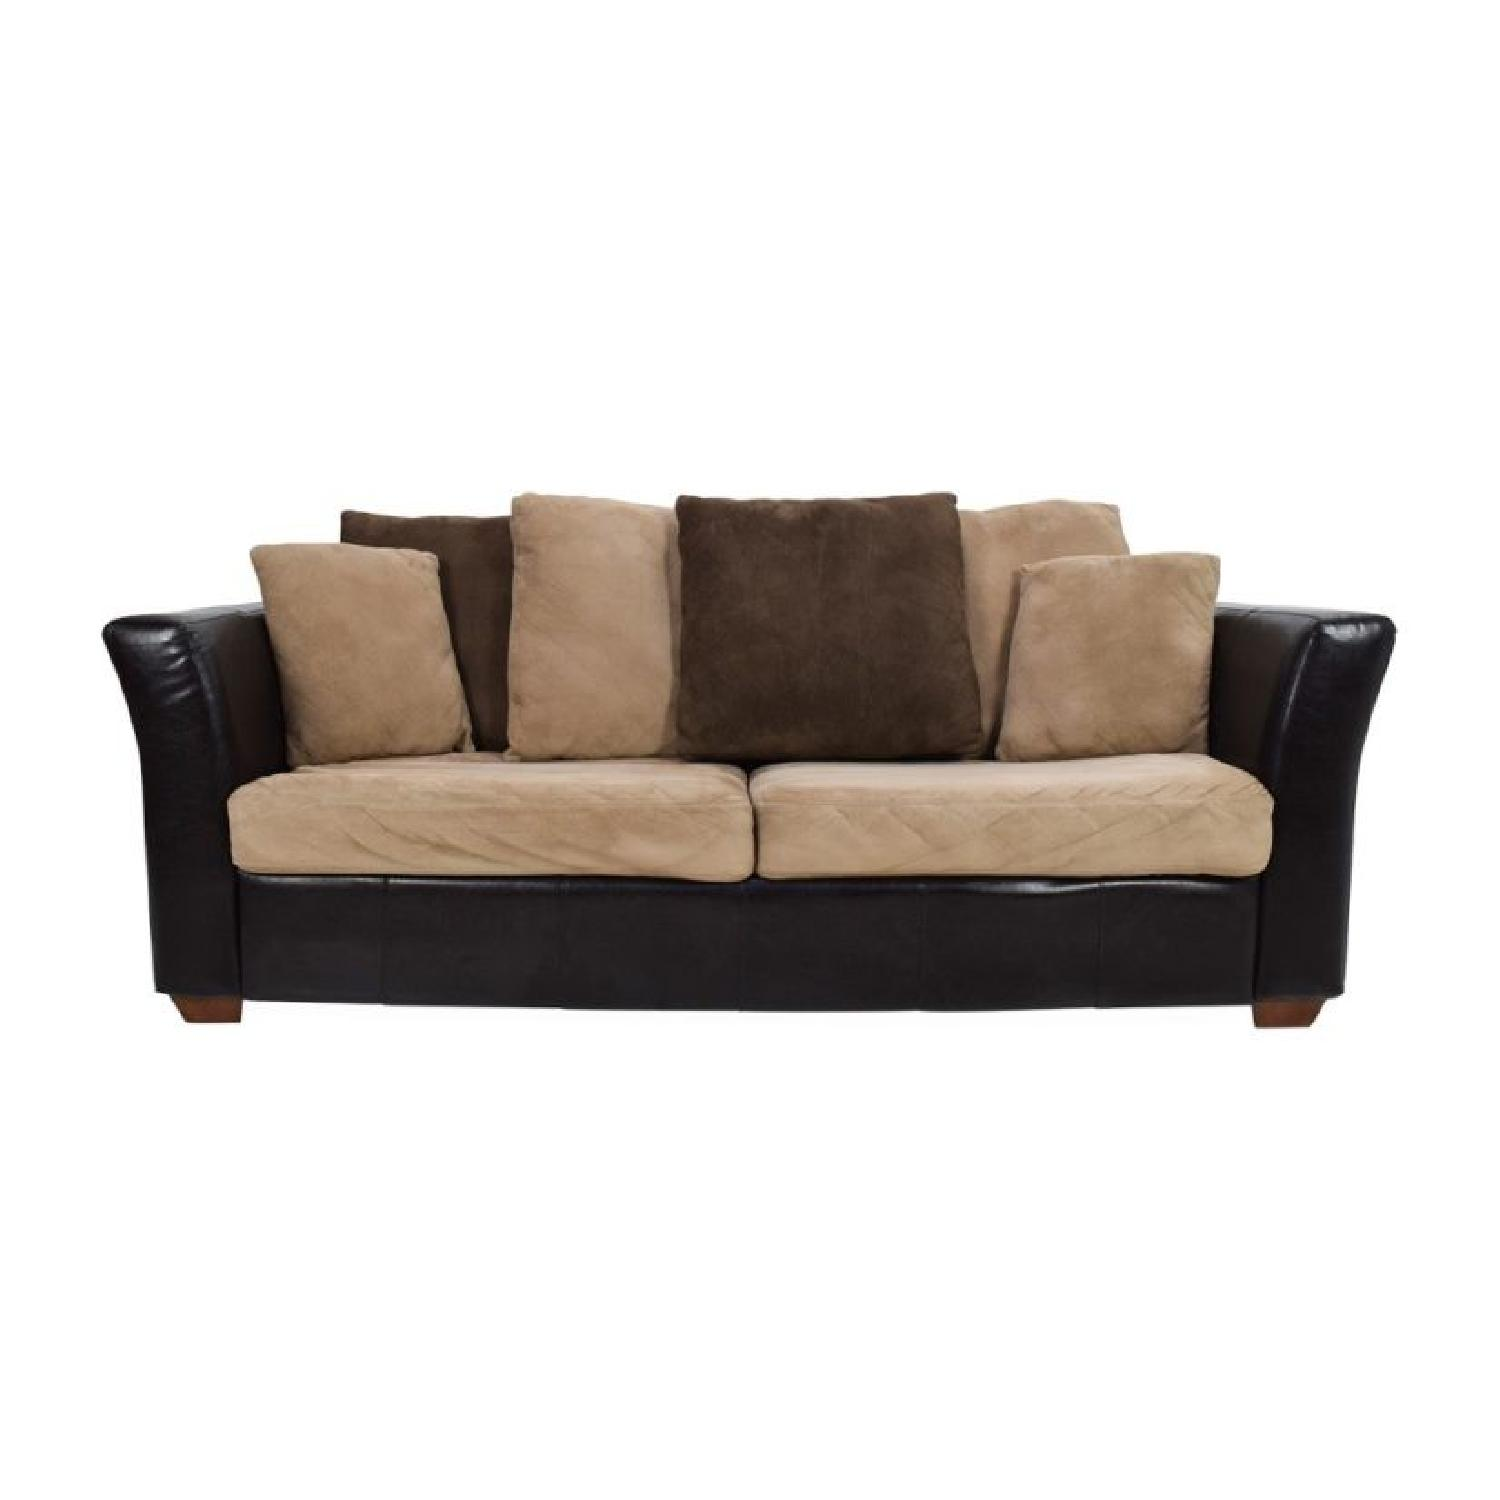 Jennifer Convertibles Faux Leather Sleeper Sofa Aptdeco